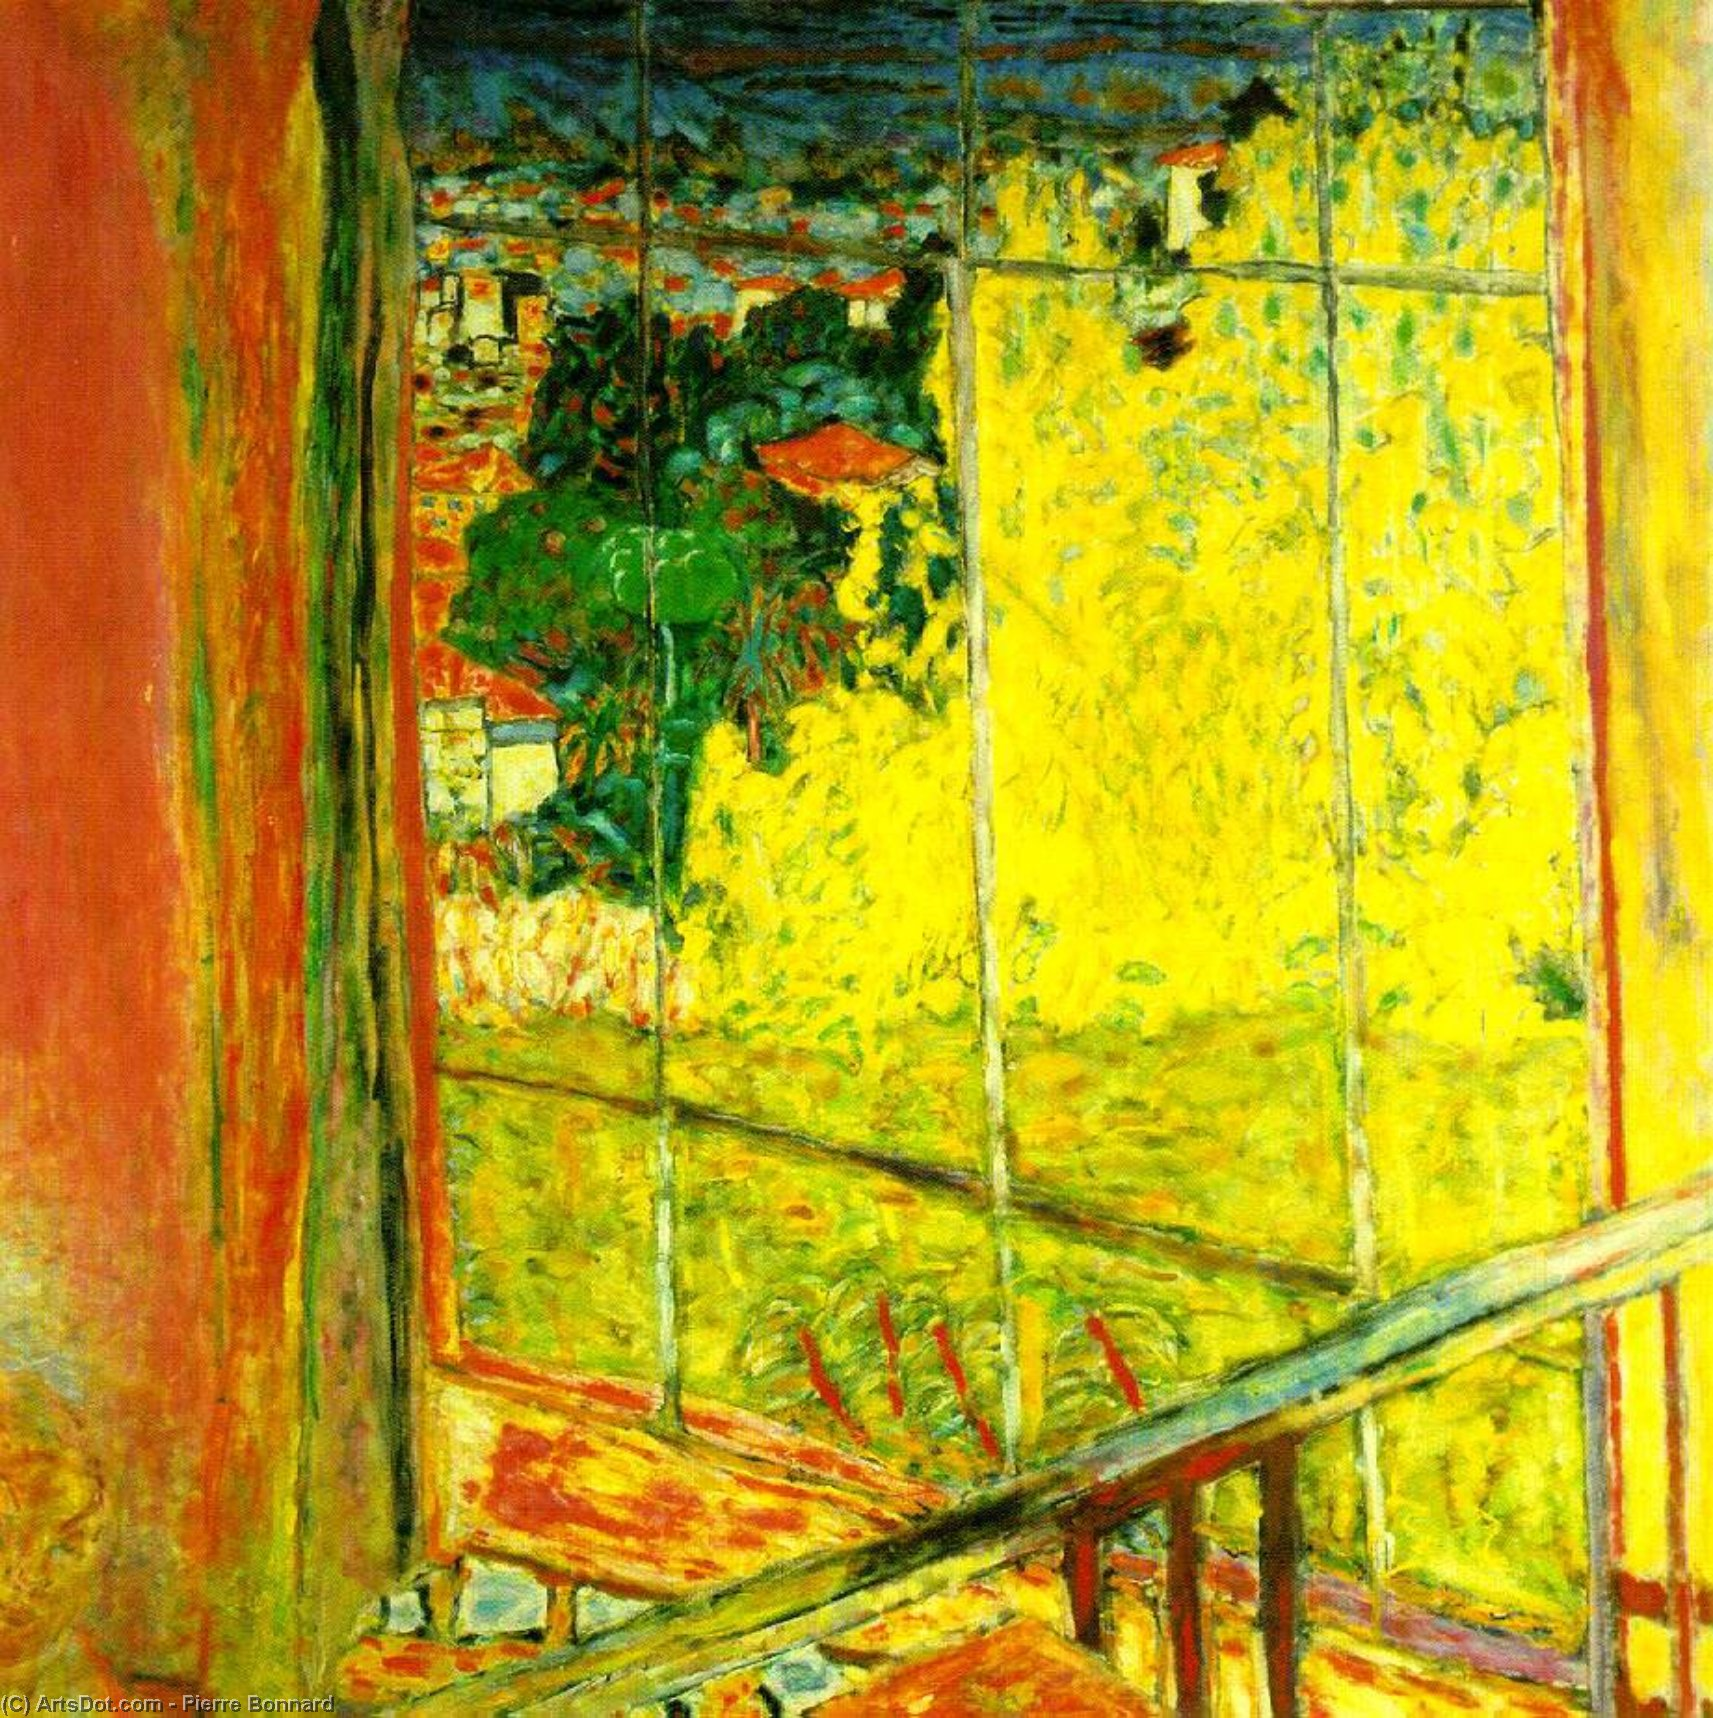 Wikioo.org - The Encyclopedia of Fine Arts - Painting, Artwork by Pierre Bonnard - L'atelier au mimosa, Musee Nationa